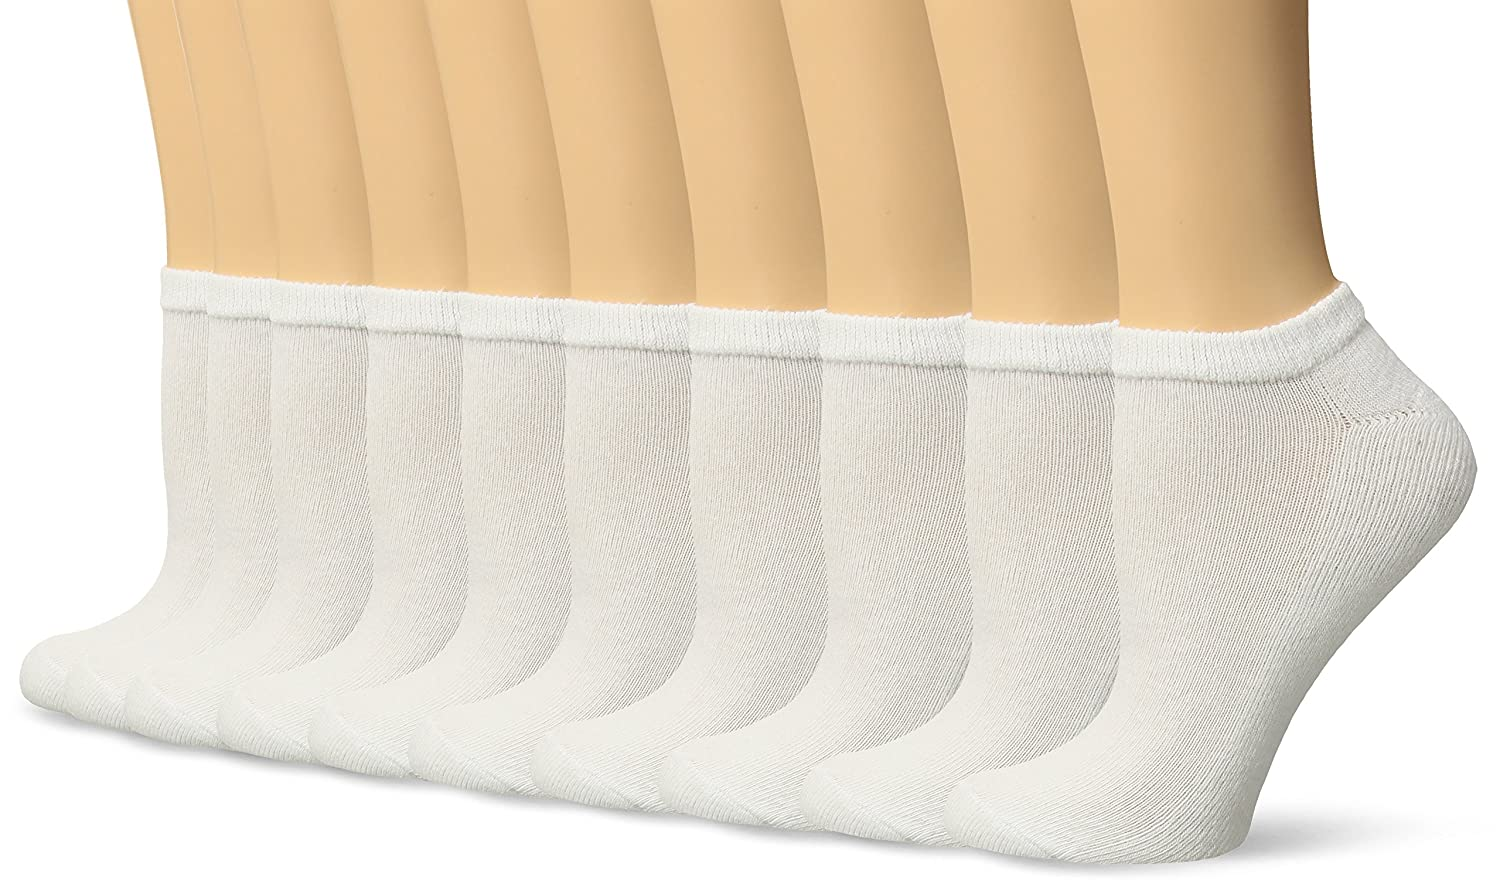 Gildan womens standard Half Cushion No Show Socks, 10 Pairs